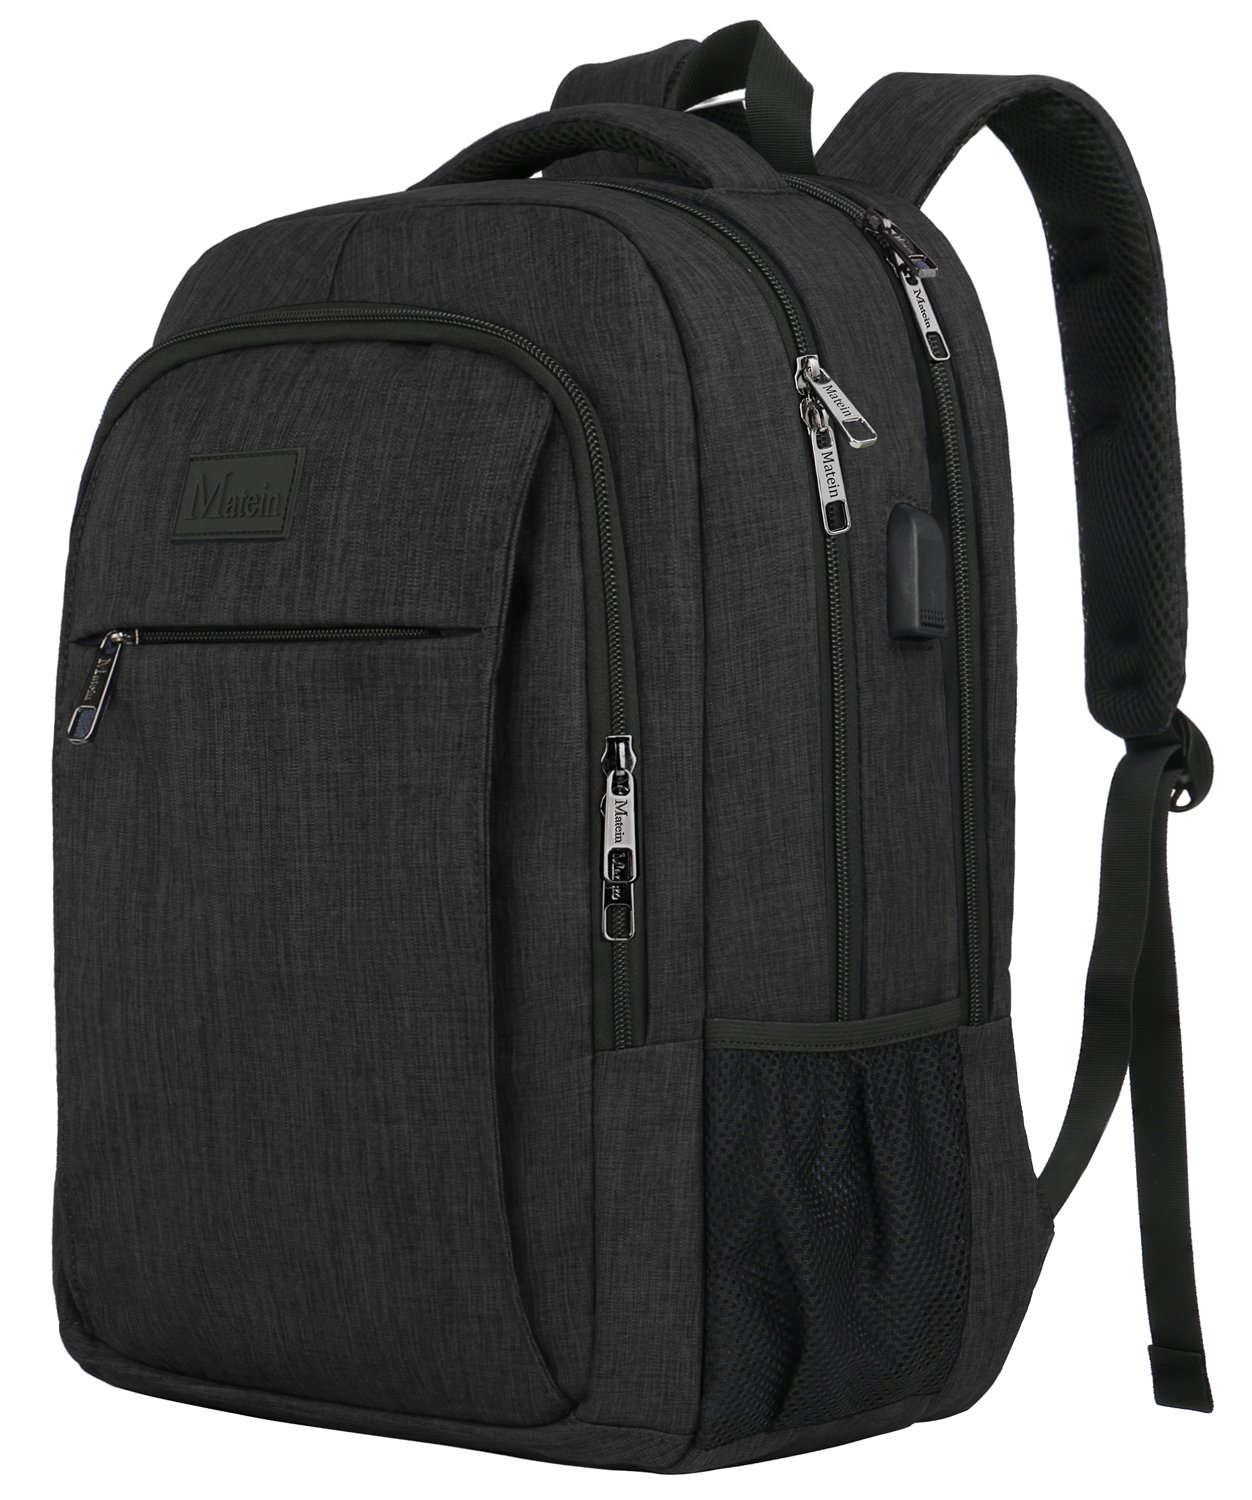 Business Laptop Backpack, Matein School BookBag for Student Durable College Backpack for Men Women Adults Teens, Water Resistant Lightweight Travel Daypack Computer Bag Fits 15.6-Inch Laptop&Notebook